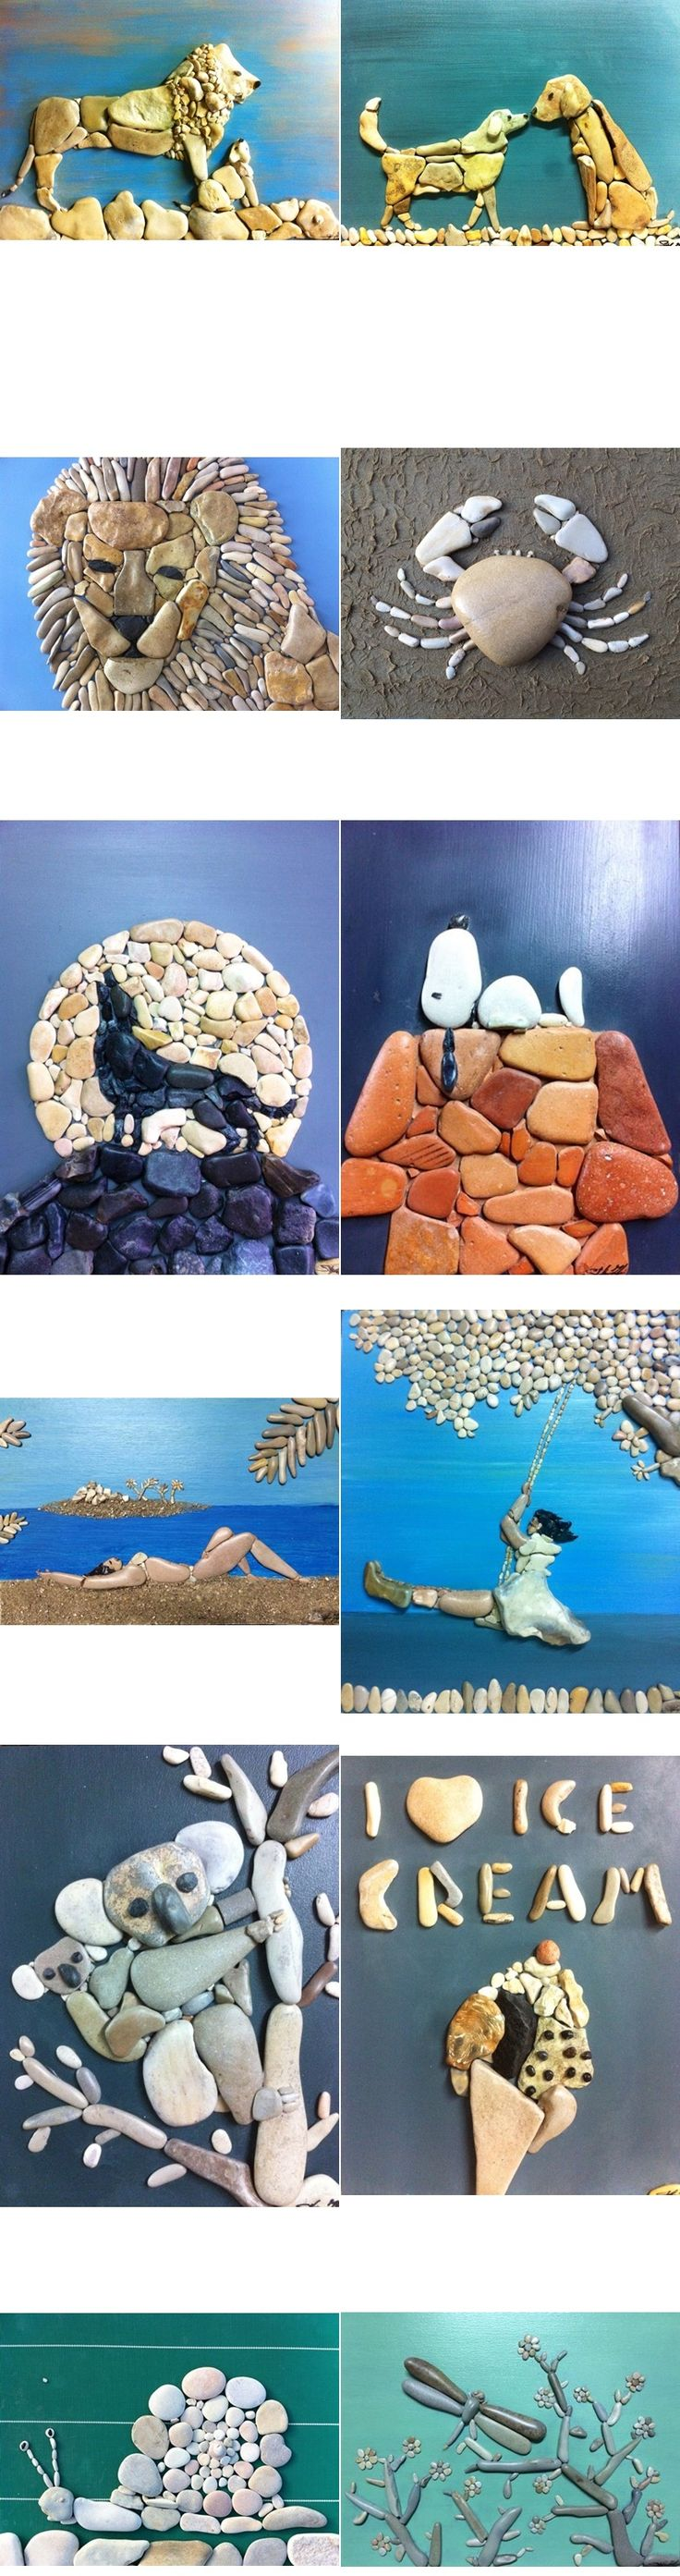 best images about stenstone on pinterest pebbleart beach